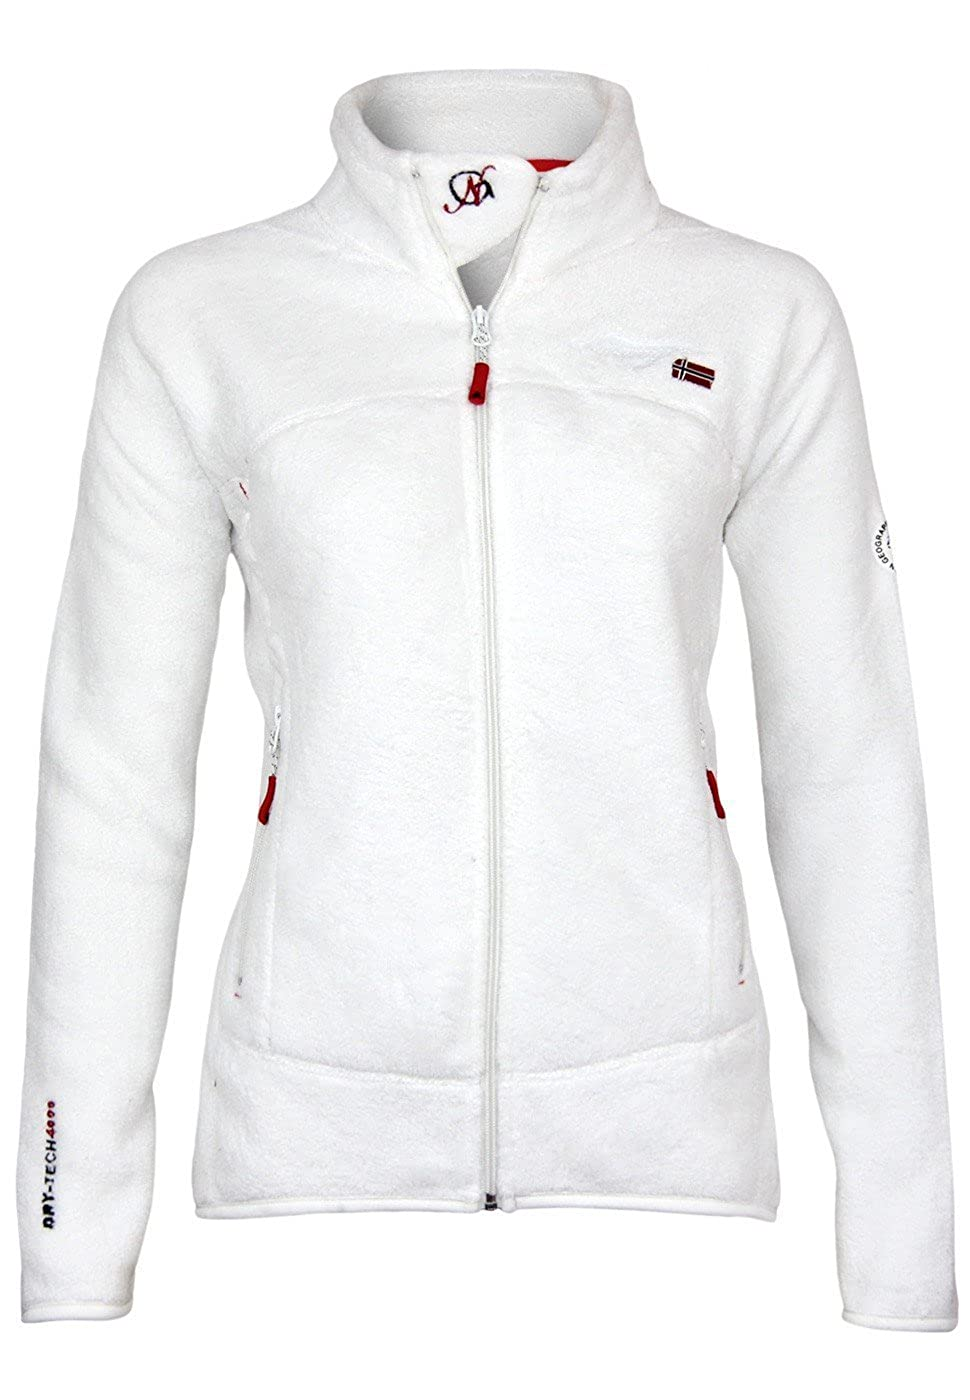 Geographical Norway Uniflore Lady Assort B, Cappotto Donna WN606F/GN